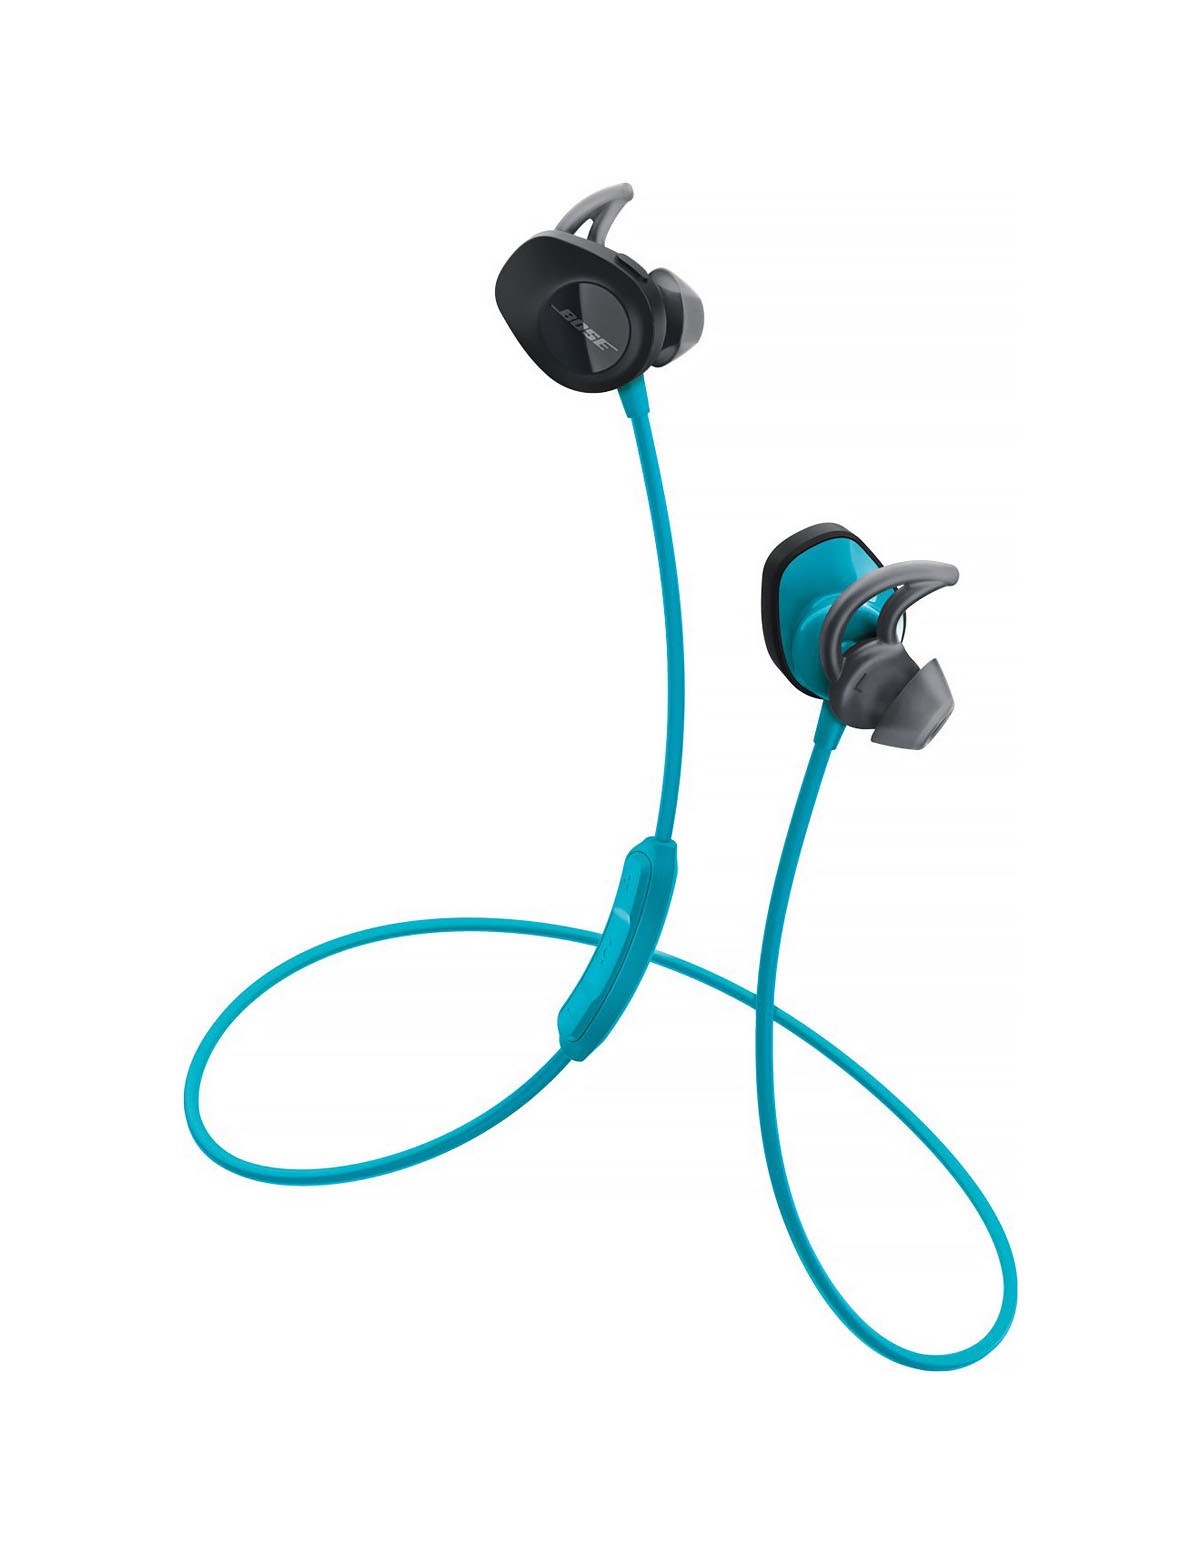 Bose SoundSport wireless aqua